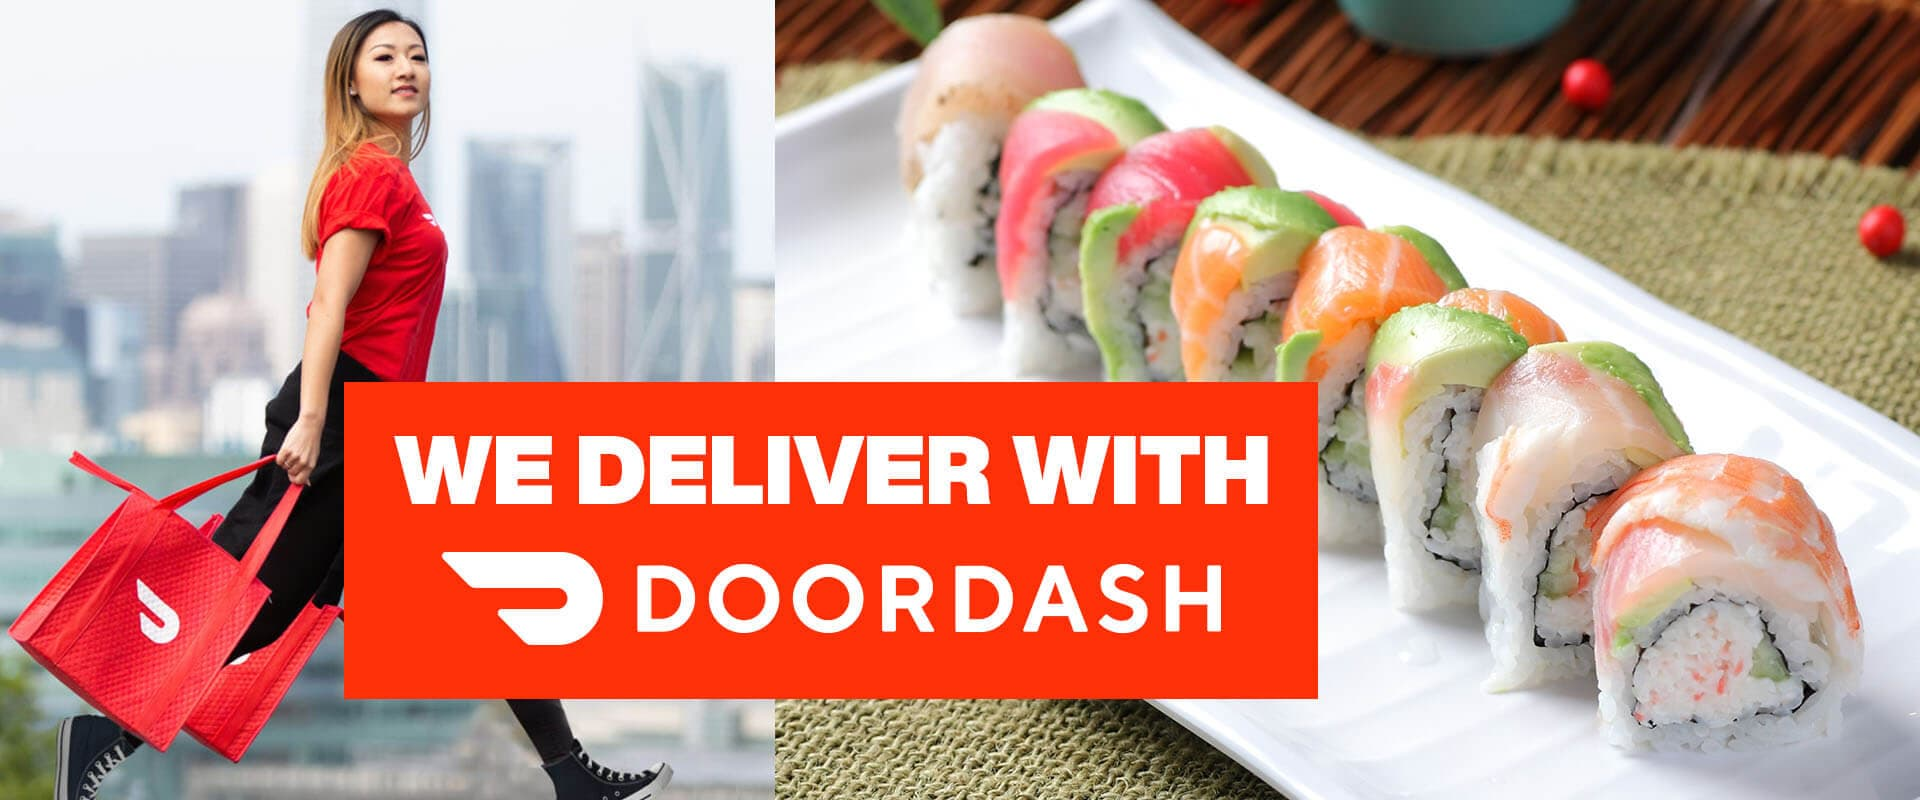 Free online food delivery with DoorDash